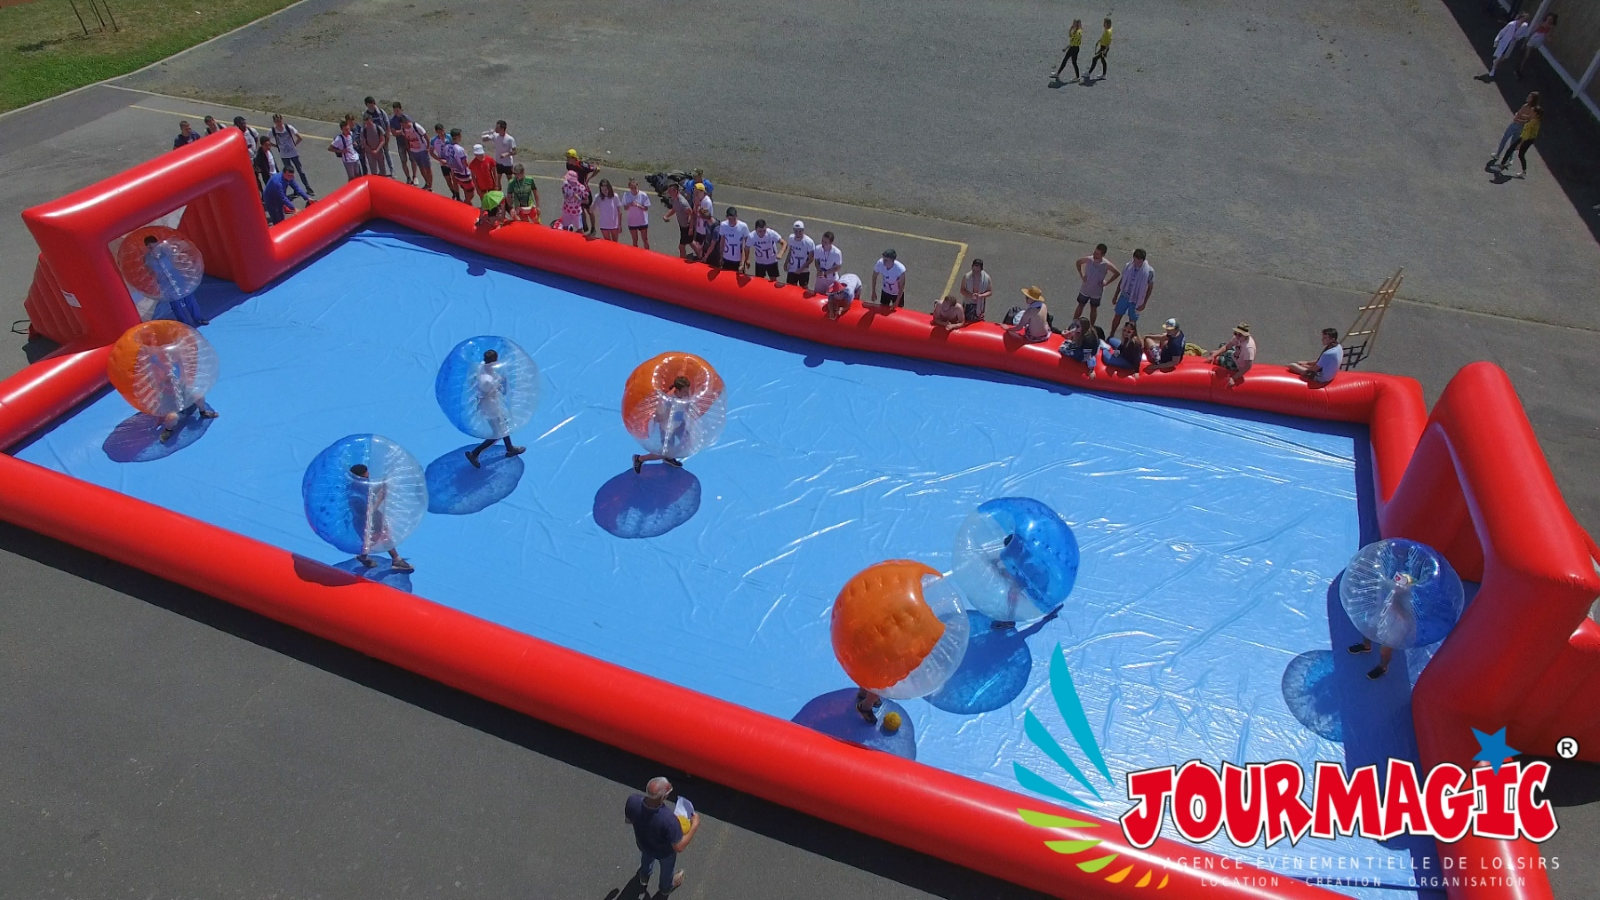 Les bubble football ou bulles de foot